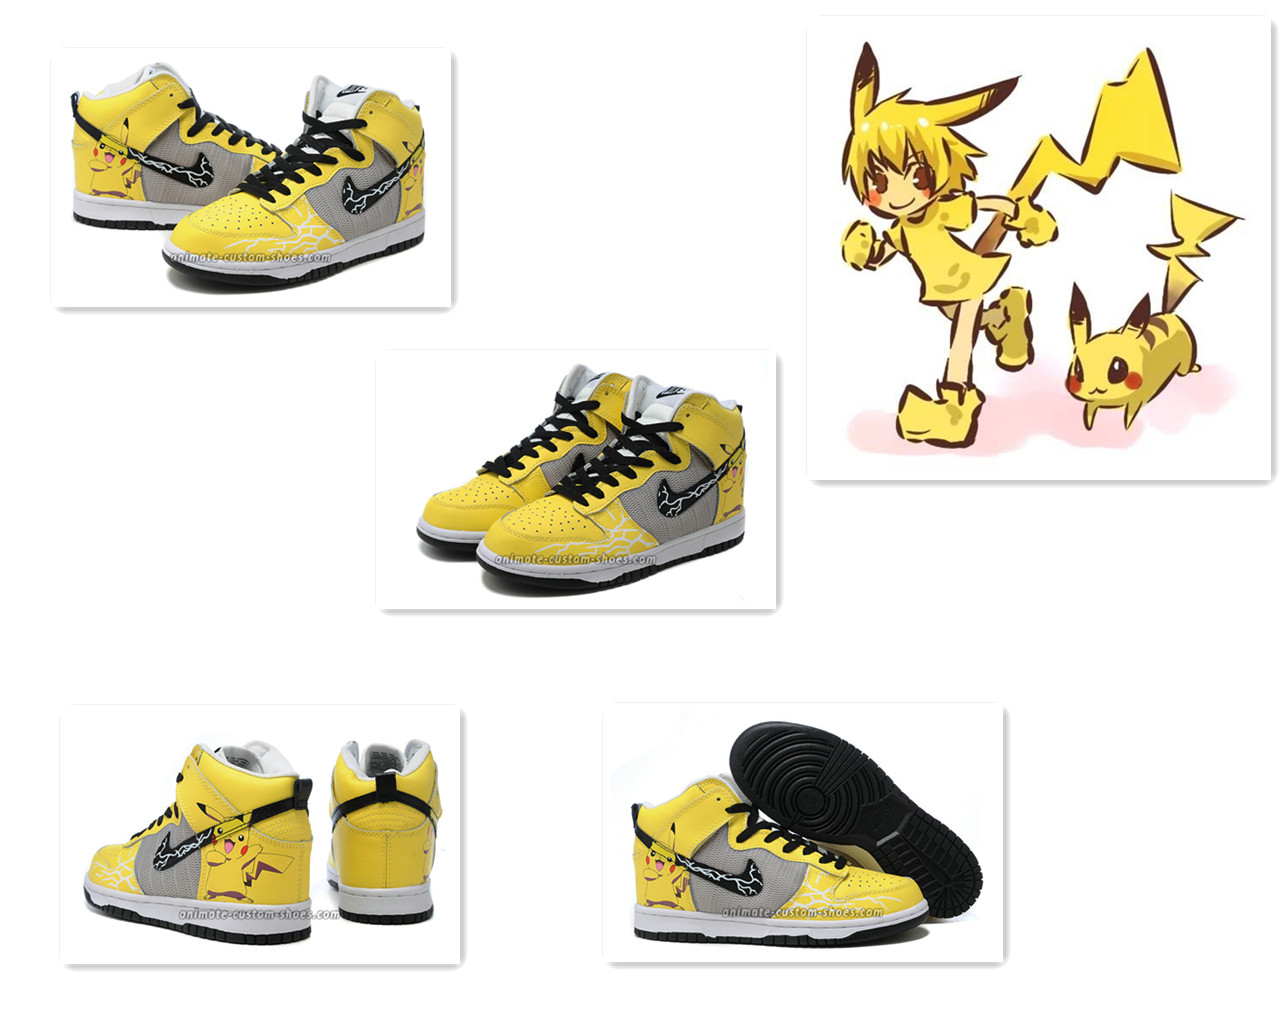 Pikachu Nike Dunks Size 7 Shop Nike Air Force Shoes At Finish Line ...